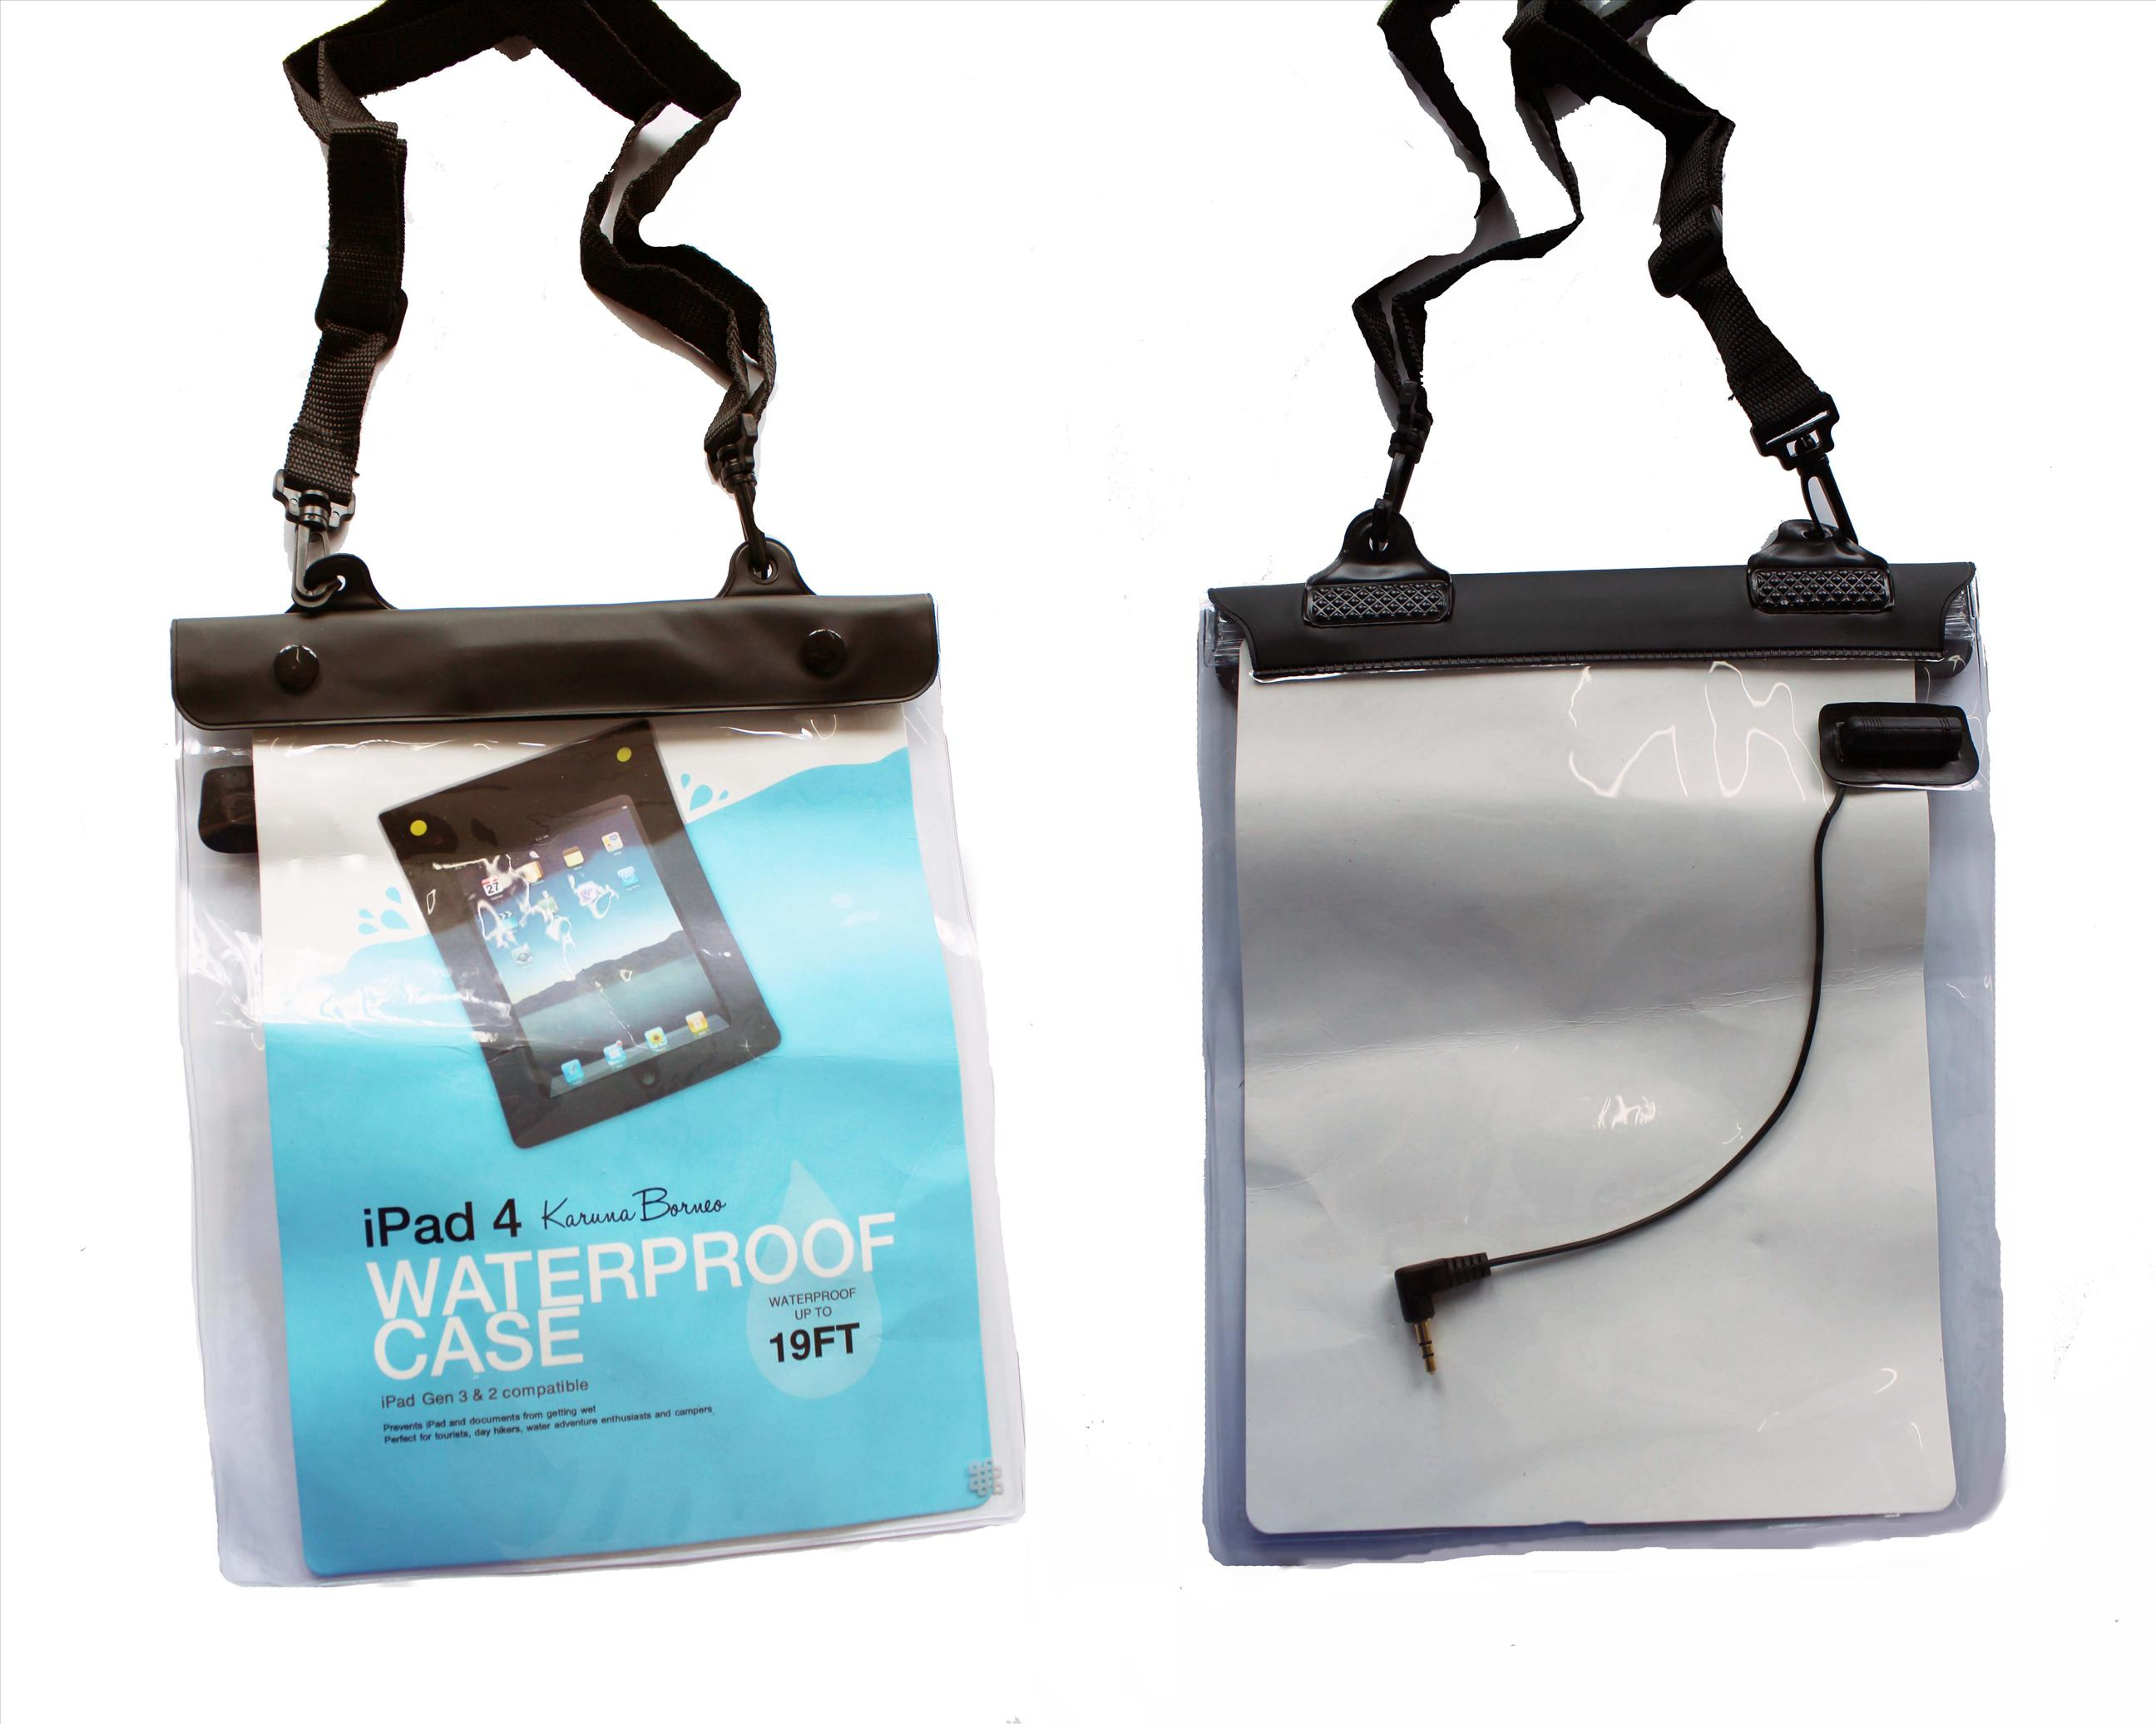 Karuna Waterproof Ipad Punch with Audio Jack which able to use as deep as 19fts in the water.